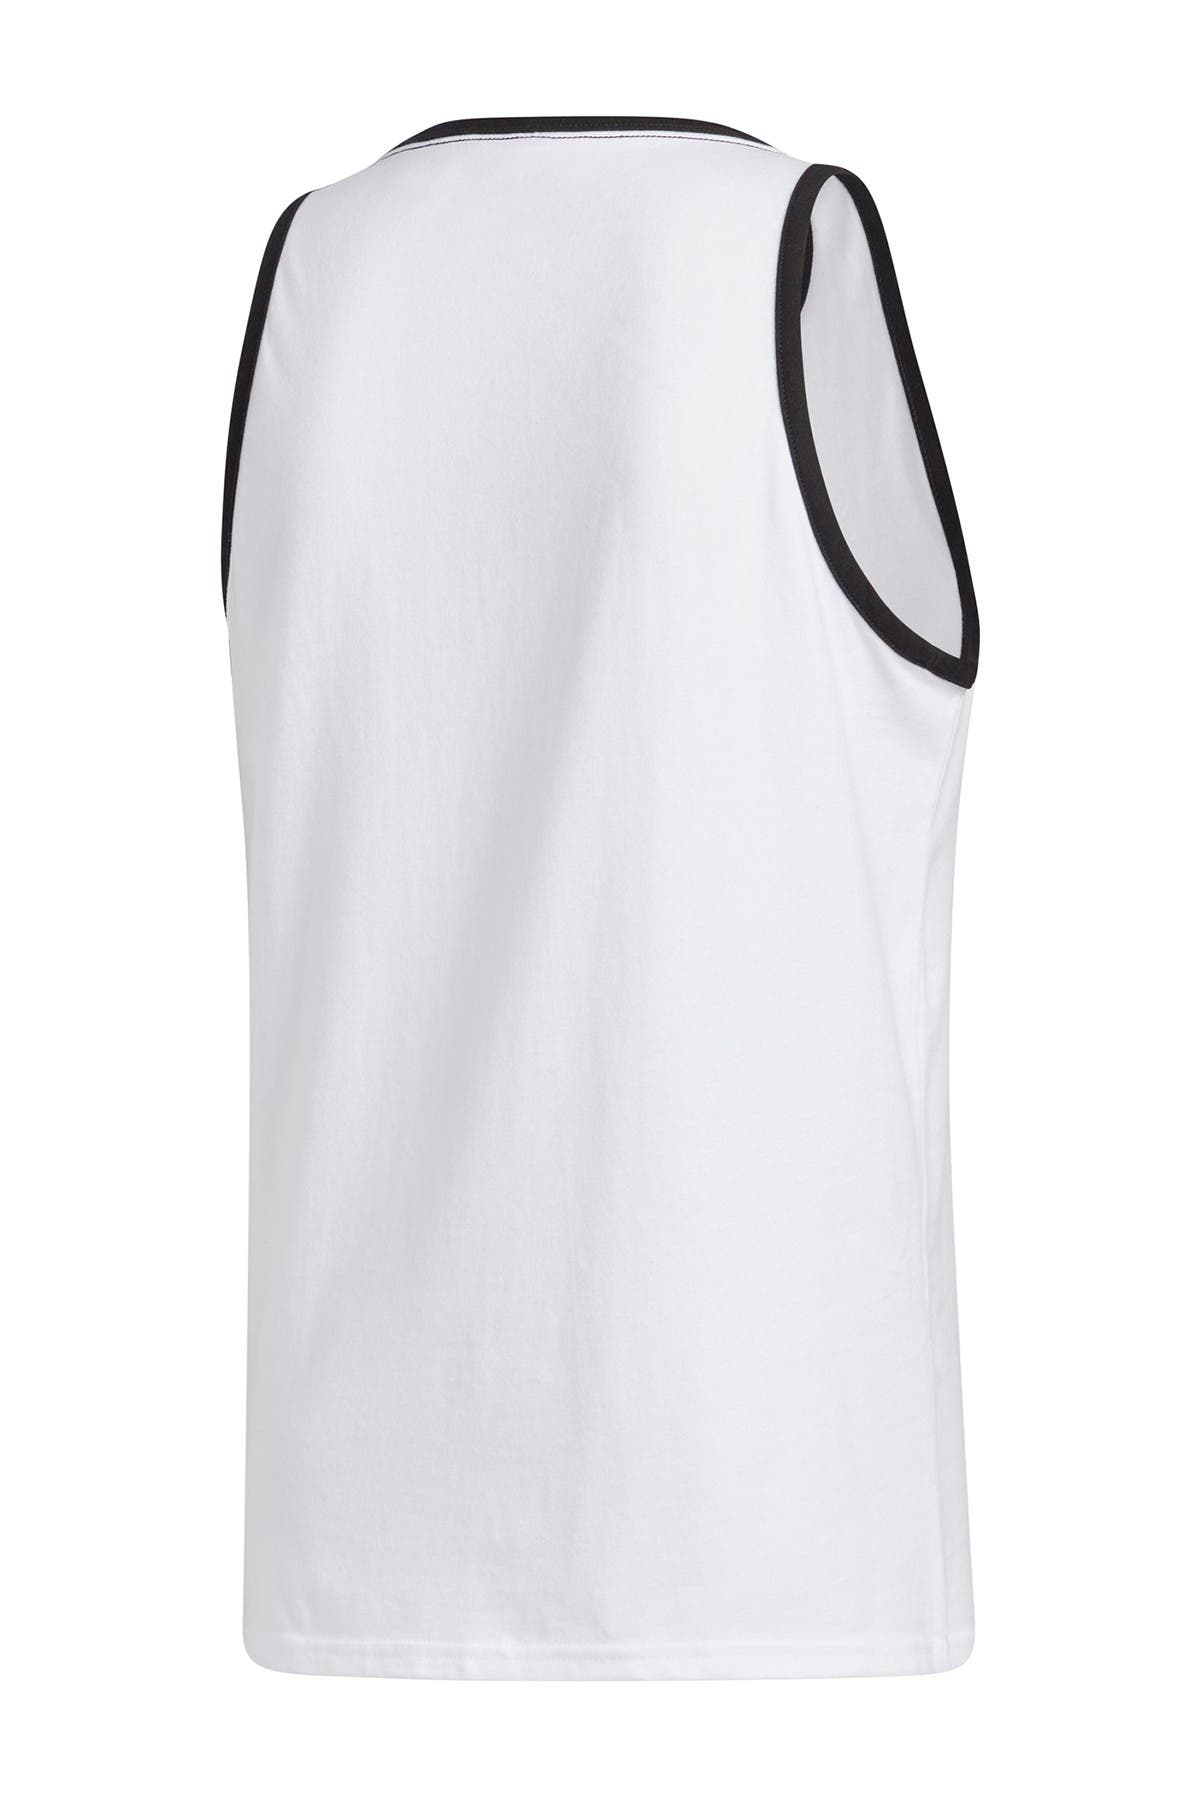 Image of adidas BOS Classic Tank Top